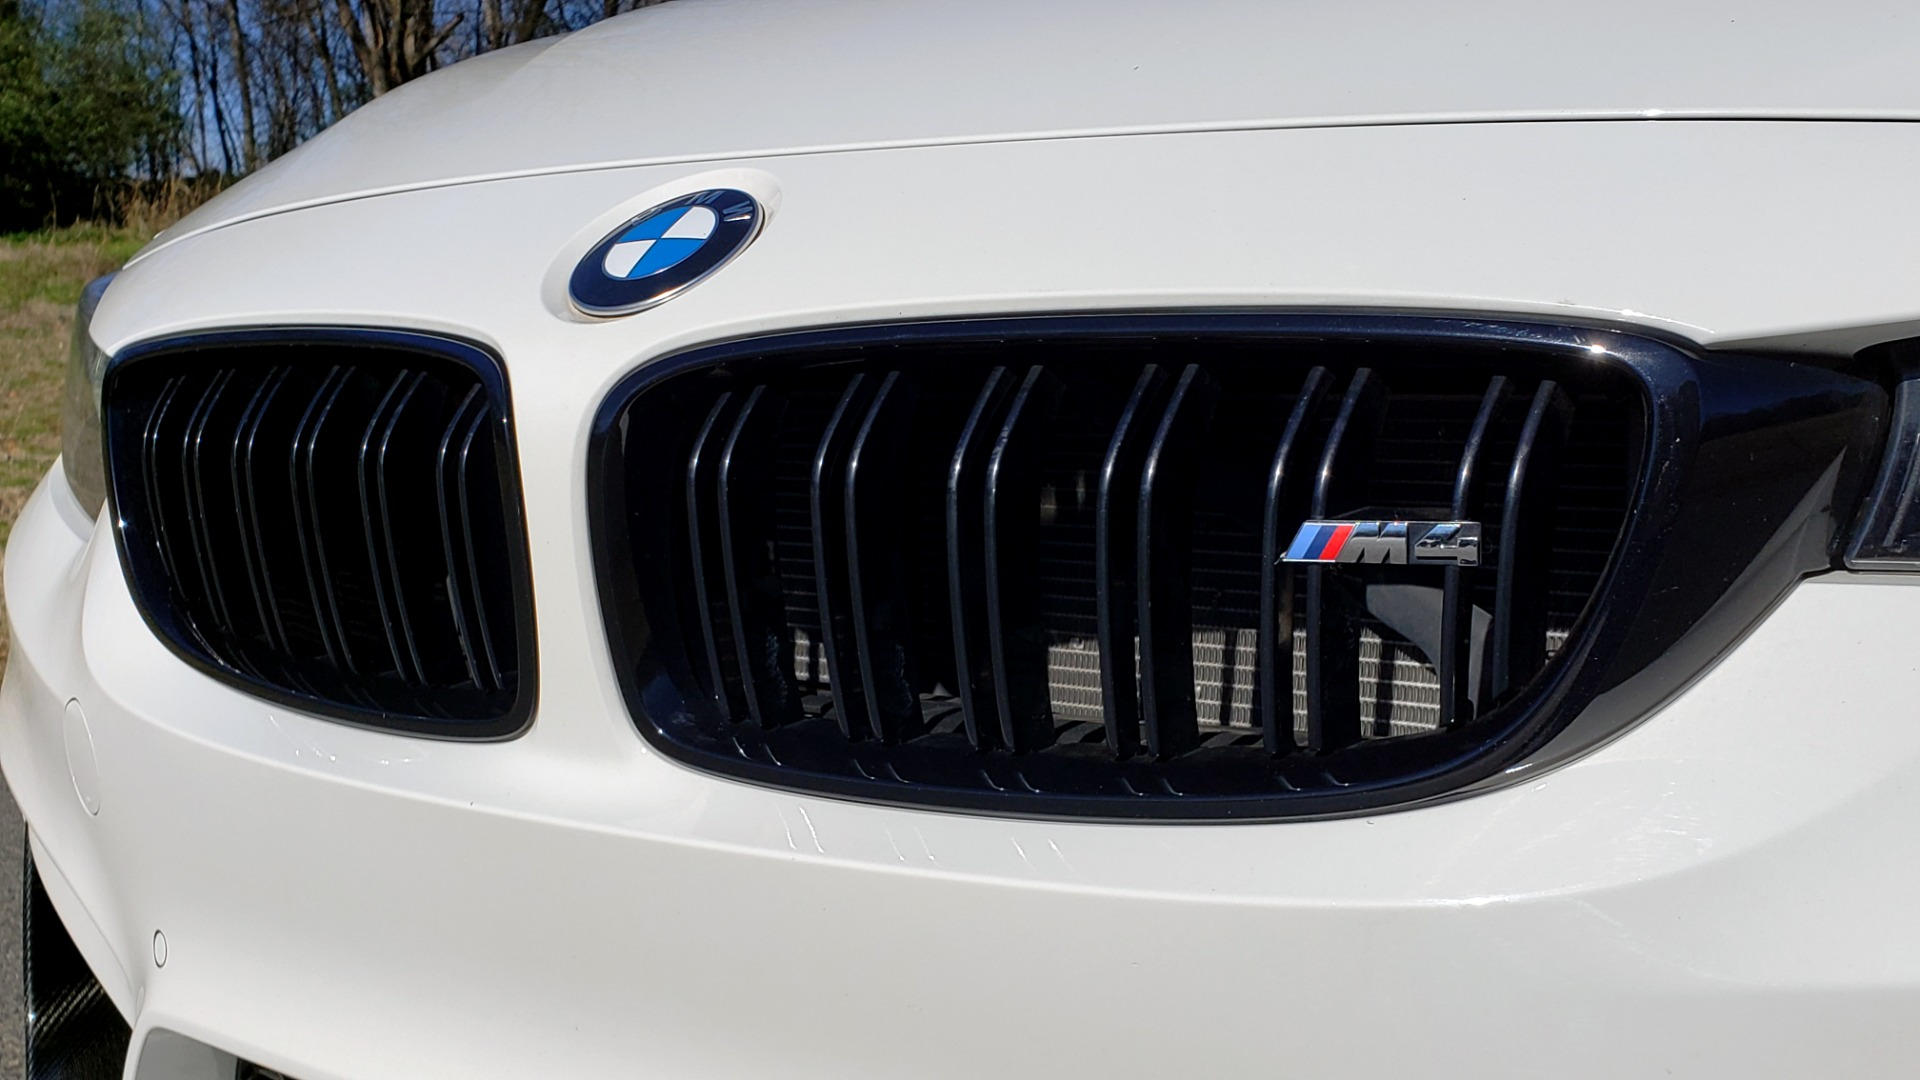 Used 2018 BMW M4 COMP PKG / EXEC / M-DRIVER / PARK CNTRL / ACTIVE BLIND SPOT for sale Sold at Formula Imports in Charlotte NC 28227 15